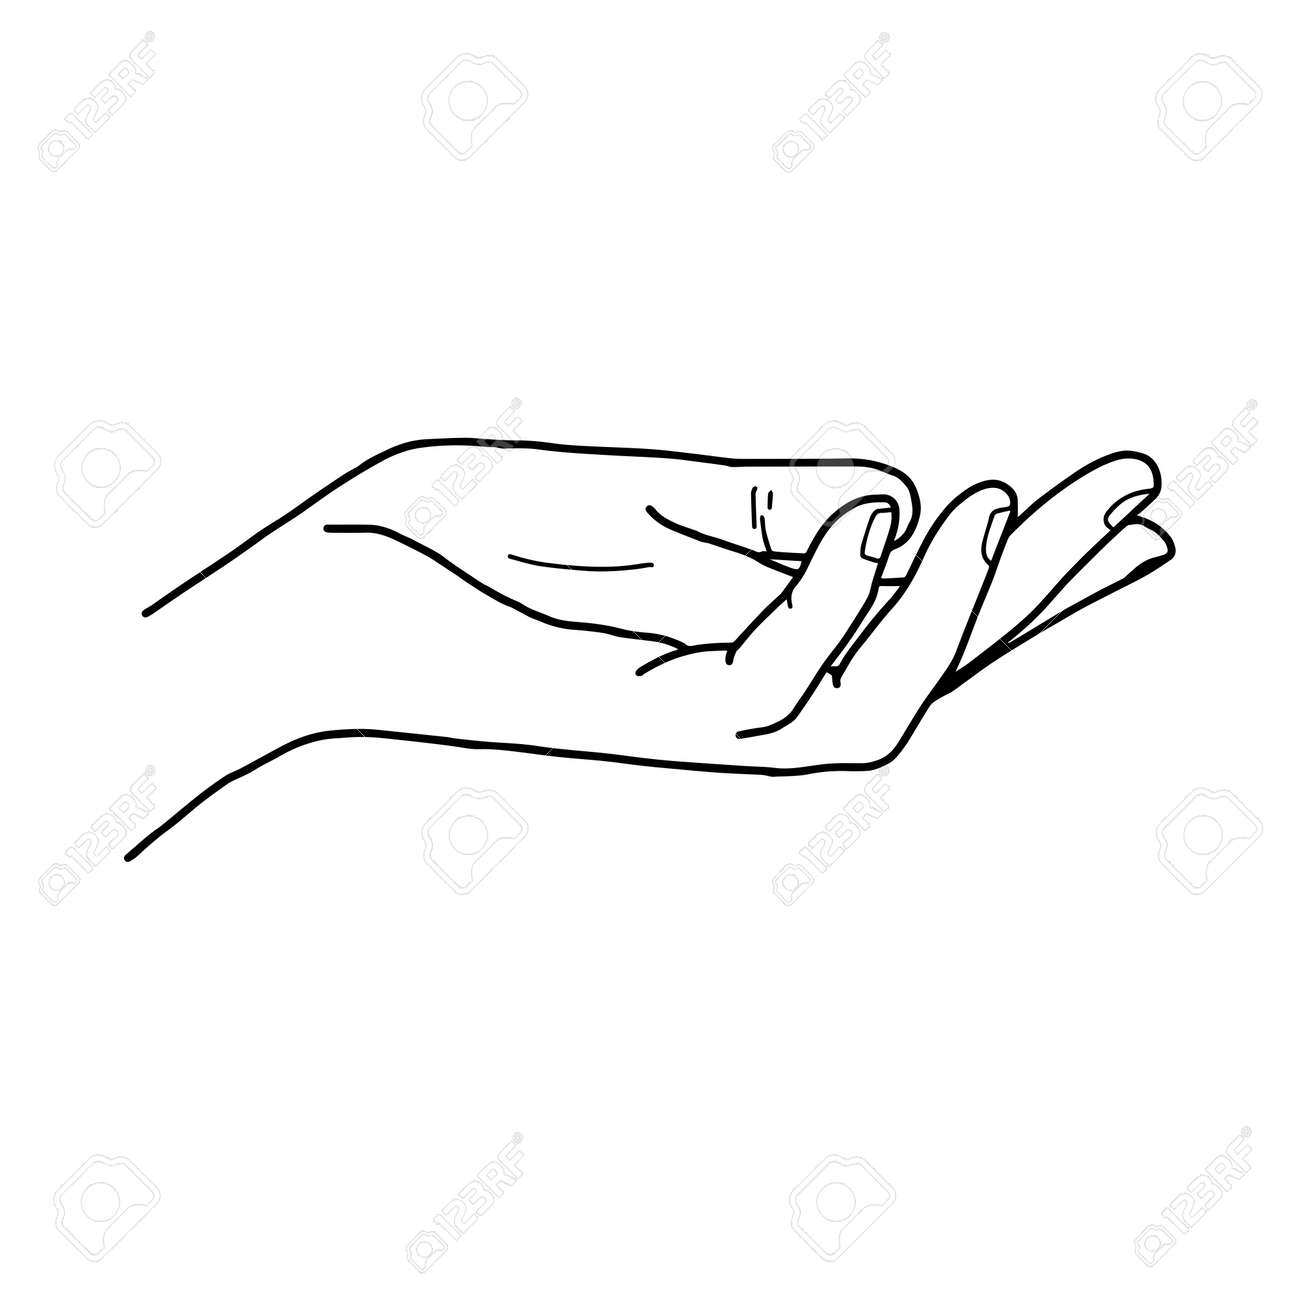 Illustration Vector Doodle Hand Drawn Of Open Hand Giving Or ...